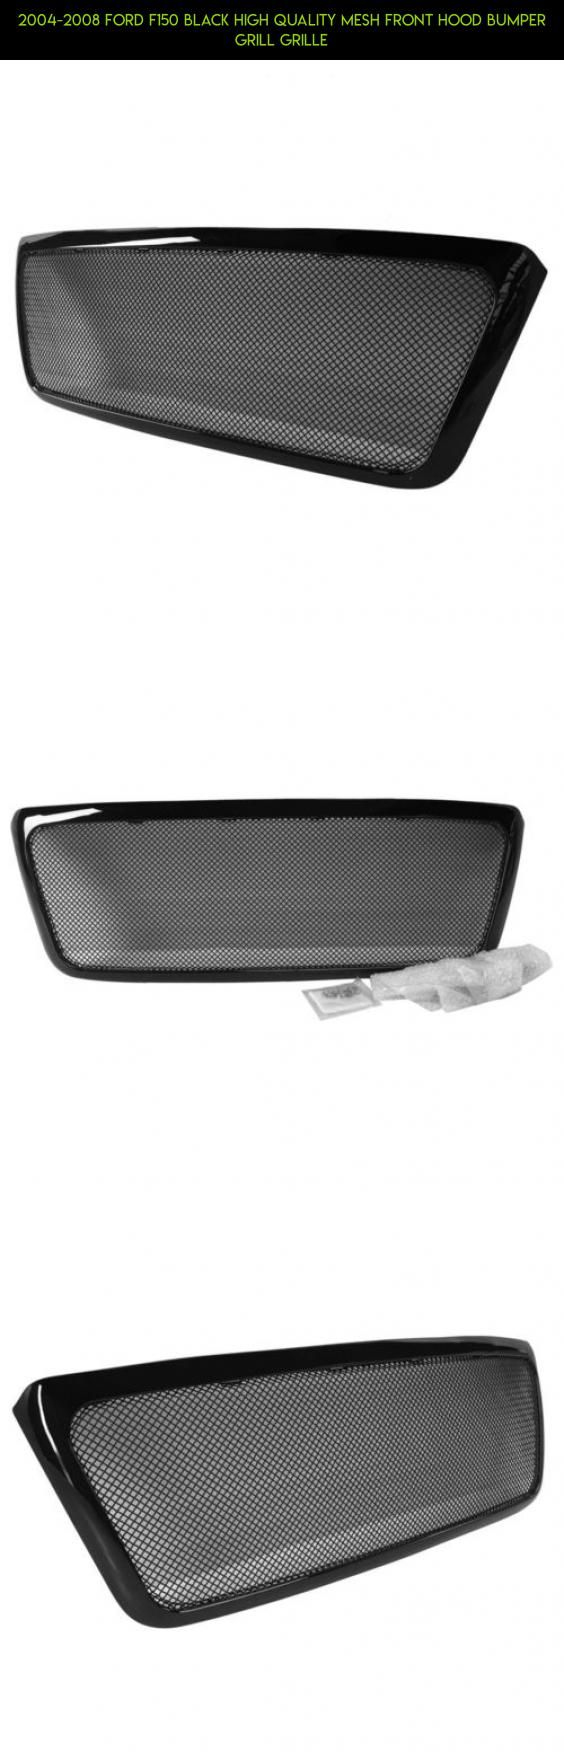 2004-2008 Ford F150 Black High Quality Mesh Front Hood Bumper Grill Grille #gadgets #drone #parts #technology #shopping #2006 #racing #plans #ford #products #kit #camera #tech #f150 #fpv #grills